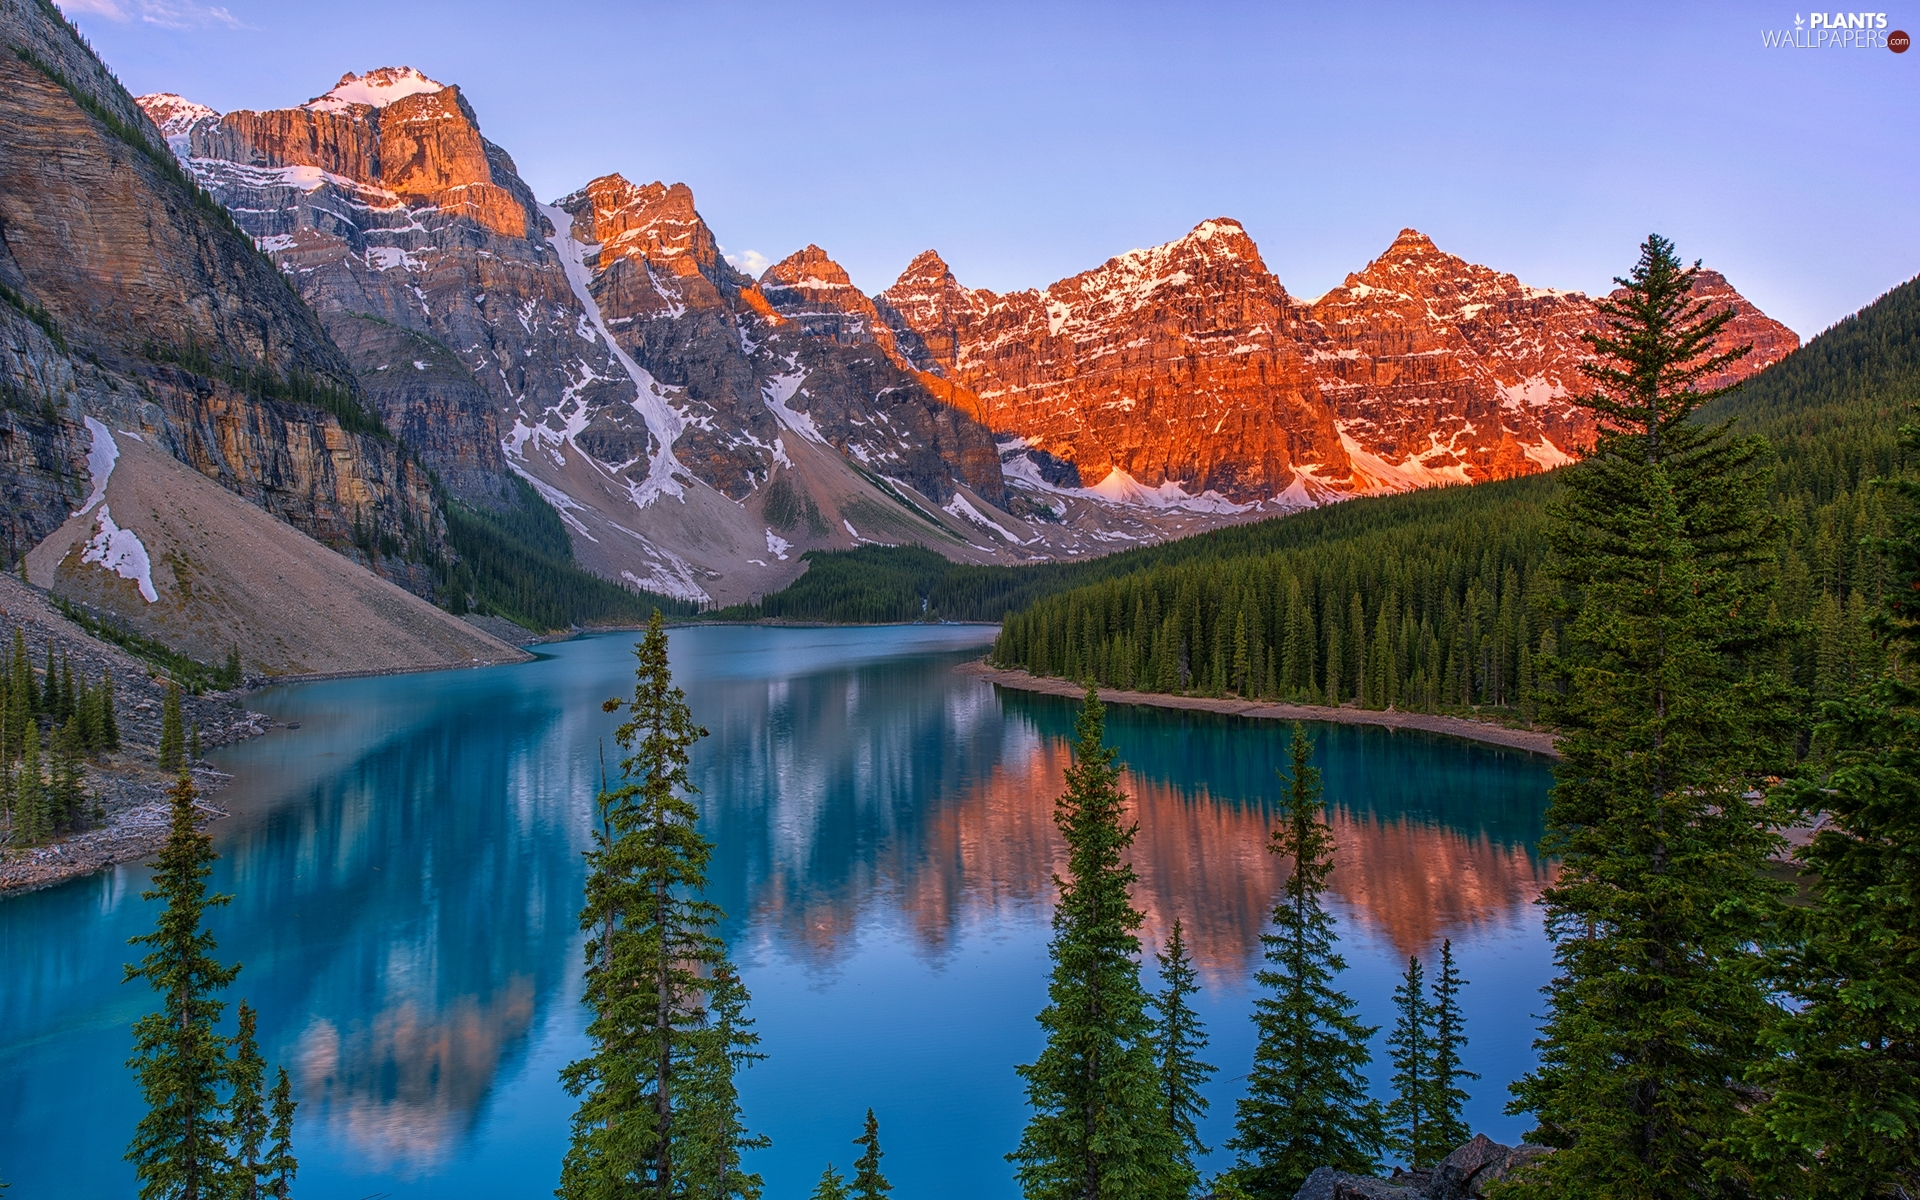 Mountains, Province of Alberta, trees, Banff National Park, Canada, Lake Moraine, viewes